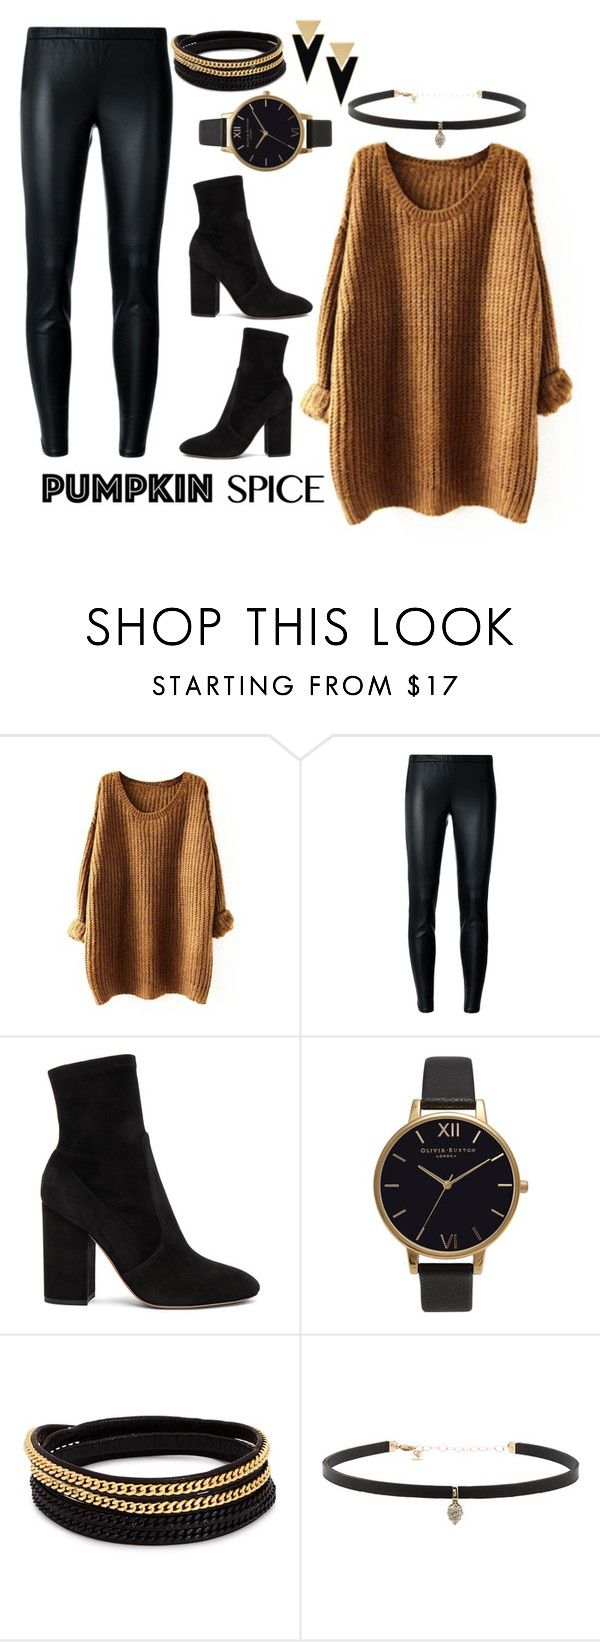 """"""""""" by rebeckarosdahl ❤ liked on Polyvore featuring MICHAEL Michael Kors, Valentino, Olivia Burton, Vita Fede, Carbon & Hyde and Yves Saint Laurent"""